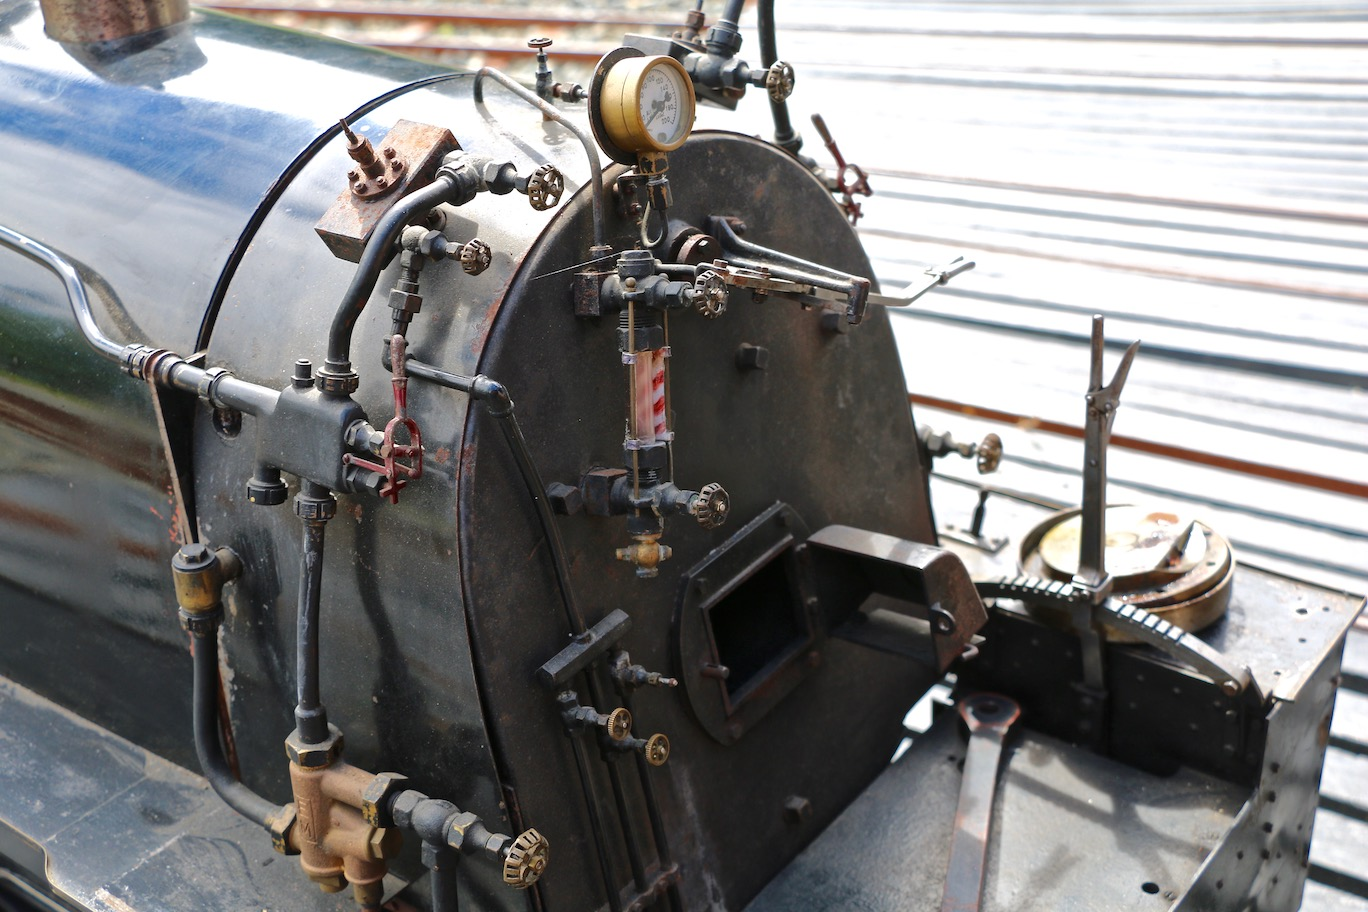 Closeup of model steam locomotive